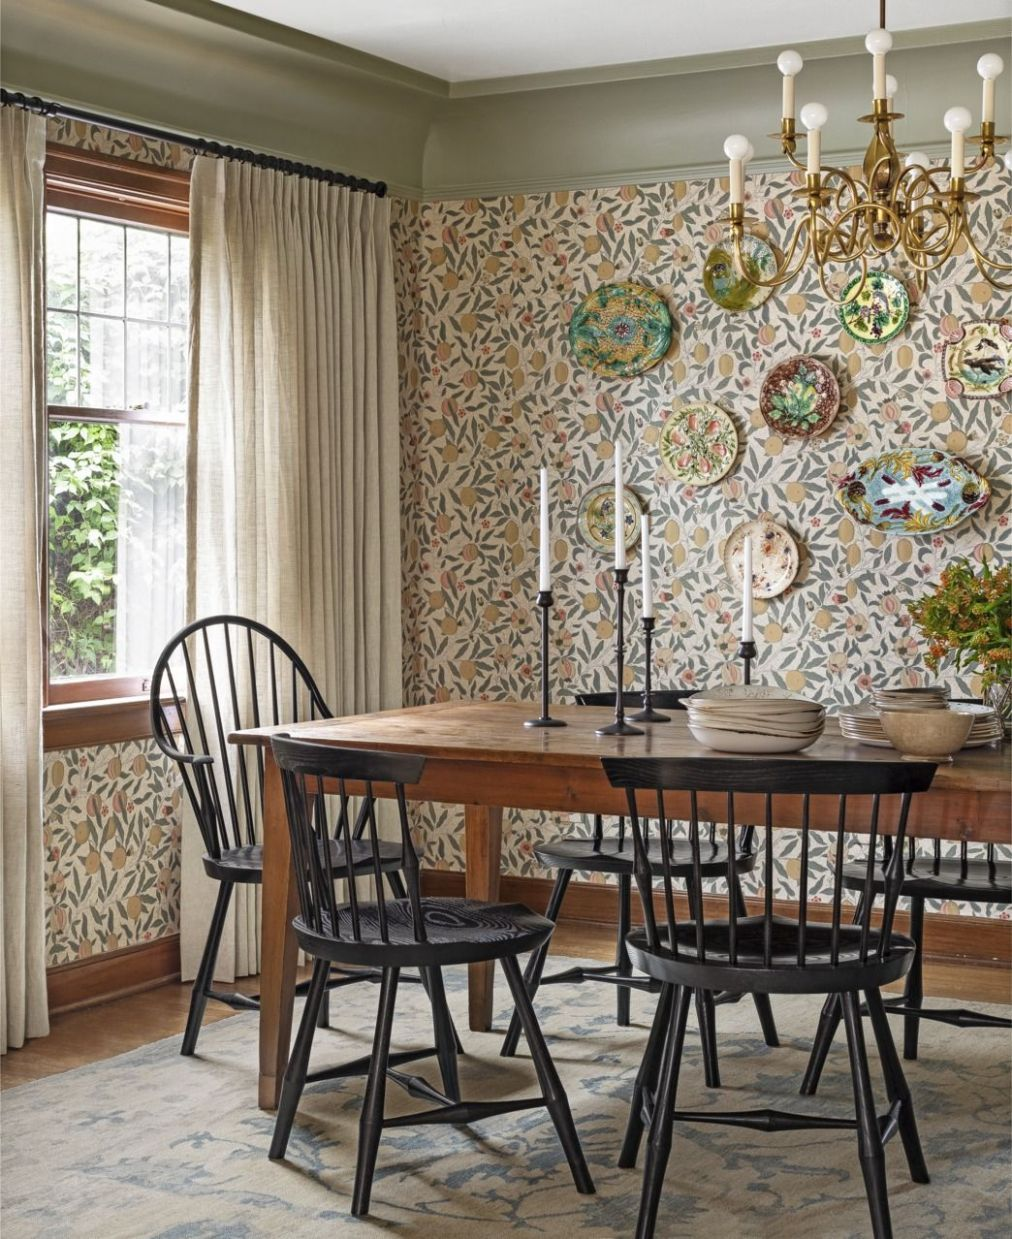 11 Best Dining Room Decorating Ideas - Country Dining Room Decor